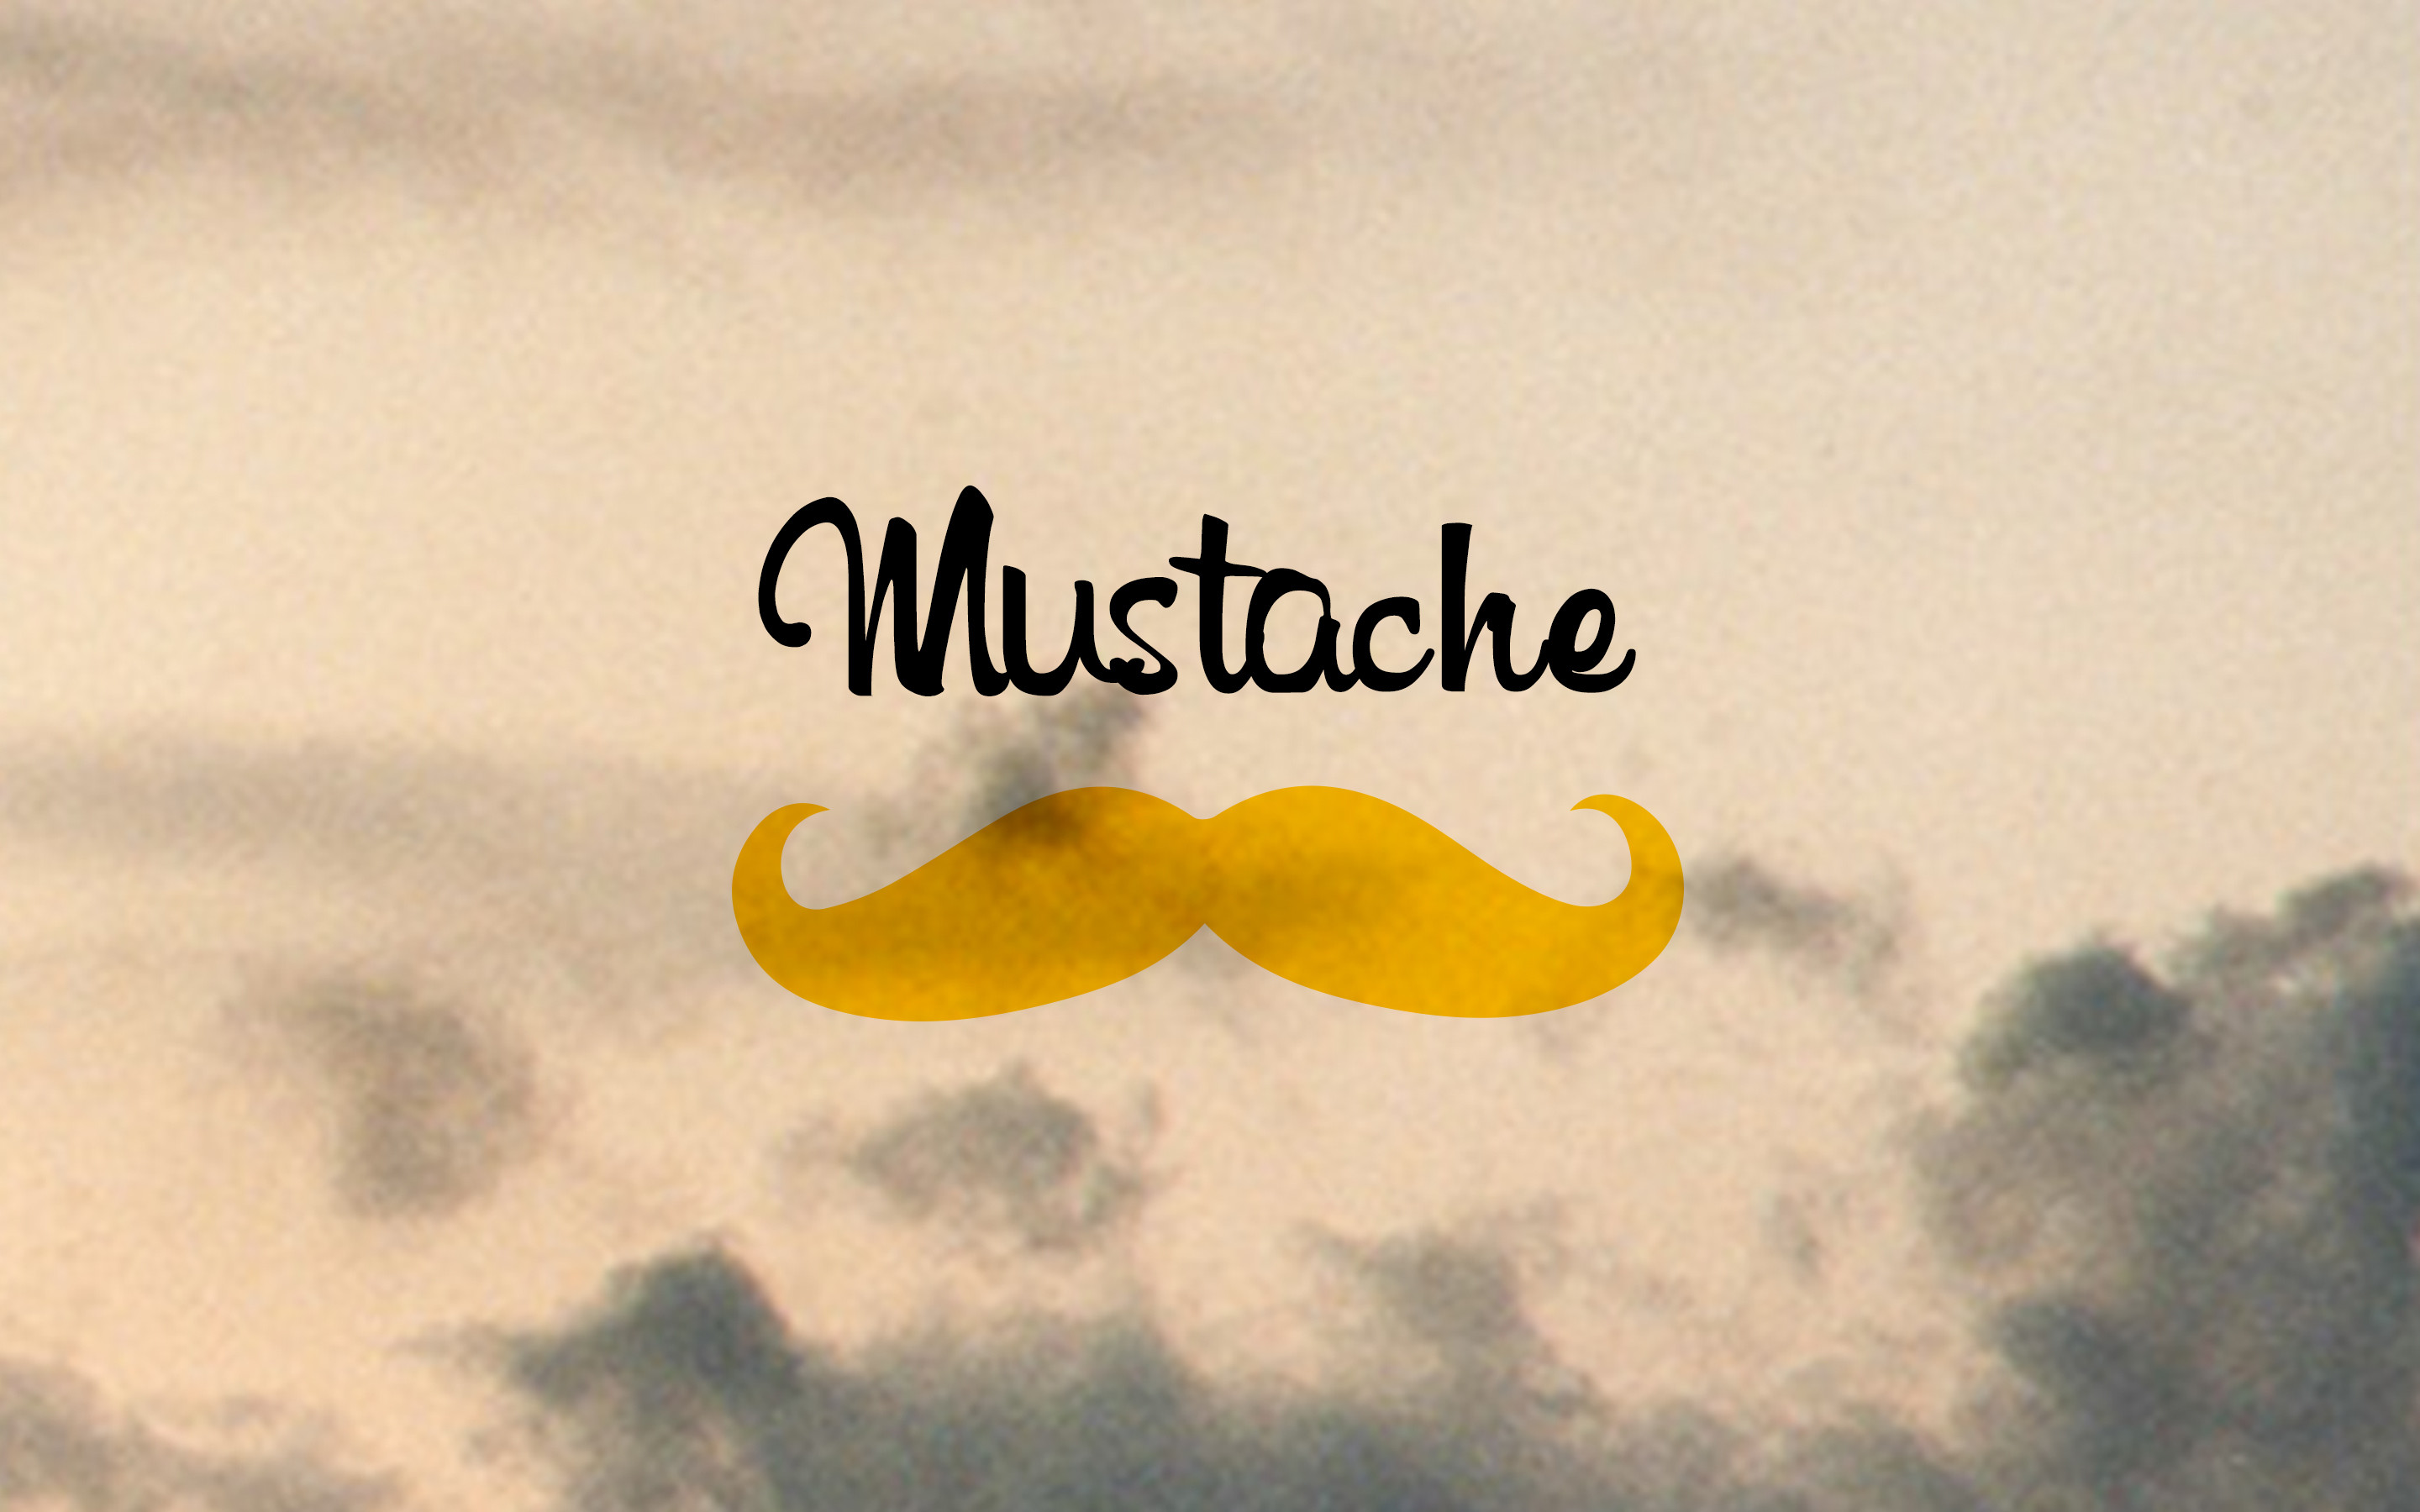 2880x1800 Mustache is Good (2048x1152 Resolution)